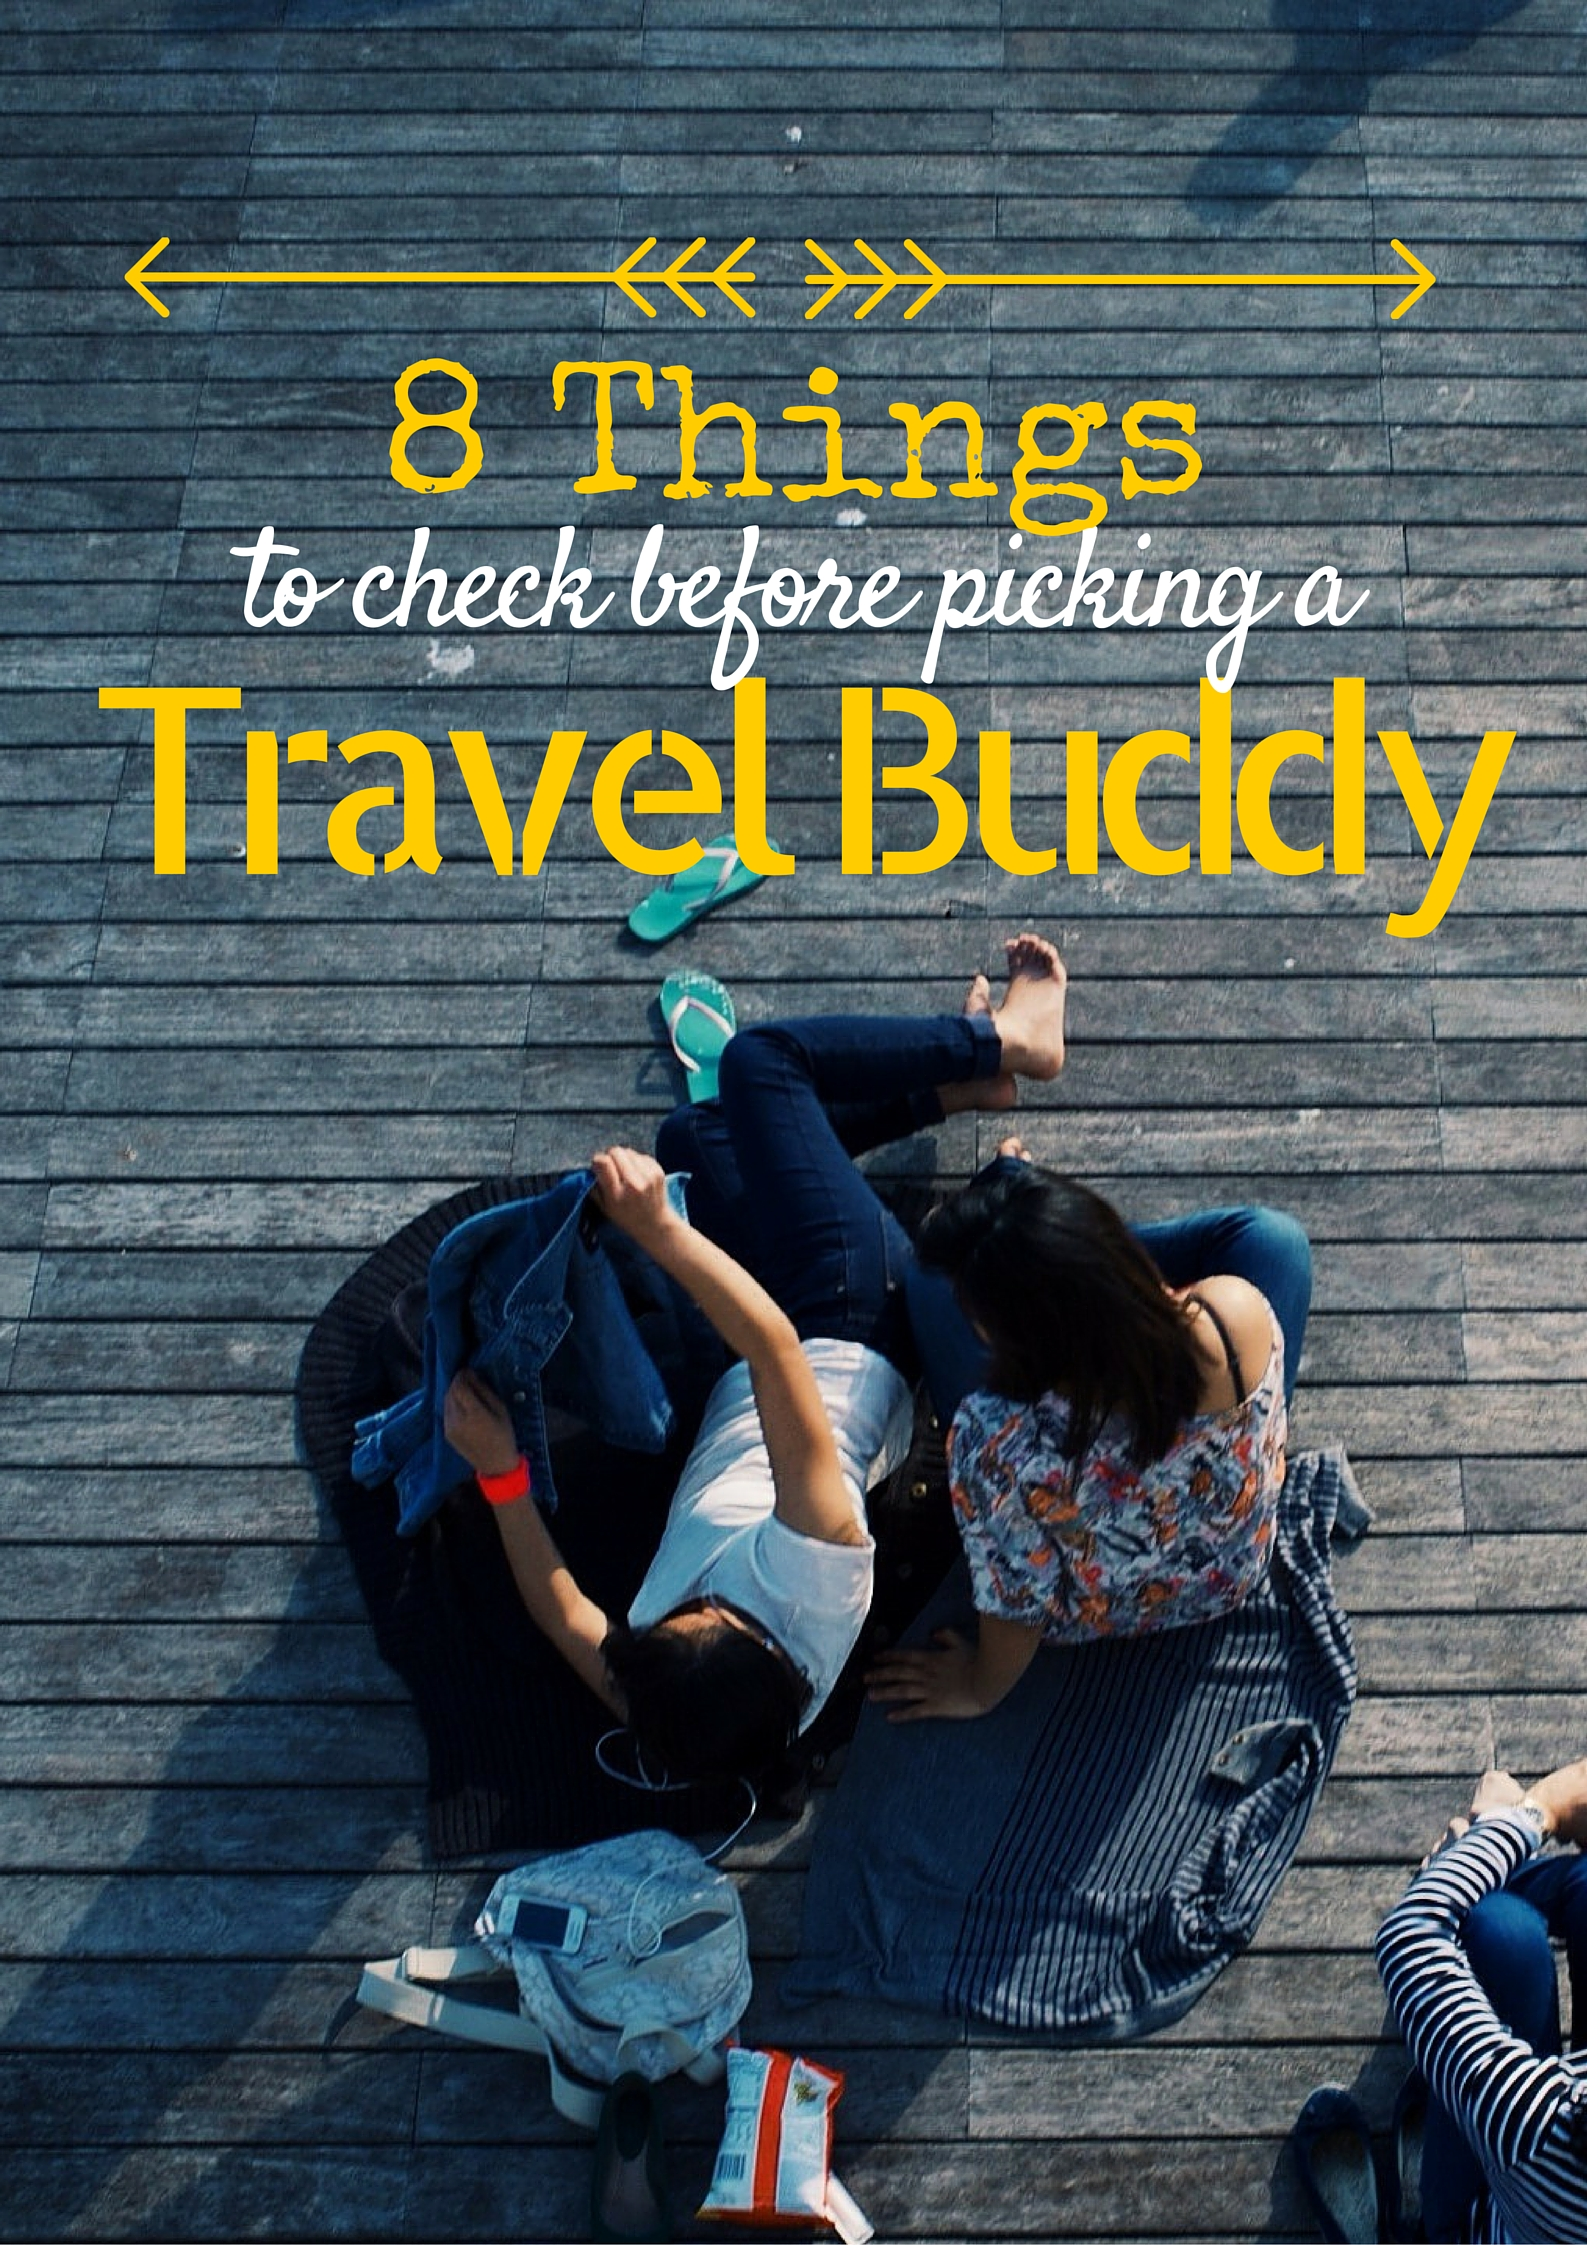 Best travel buddy sites